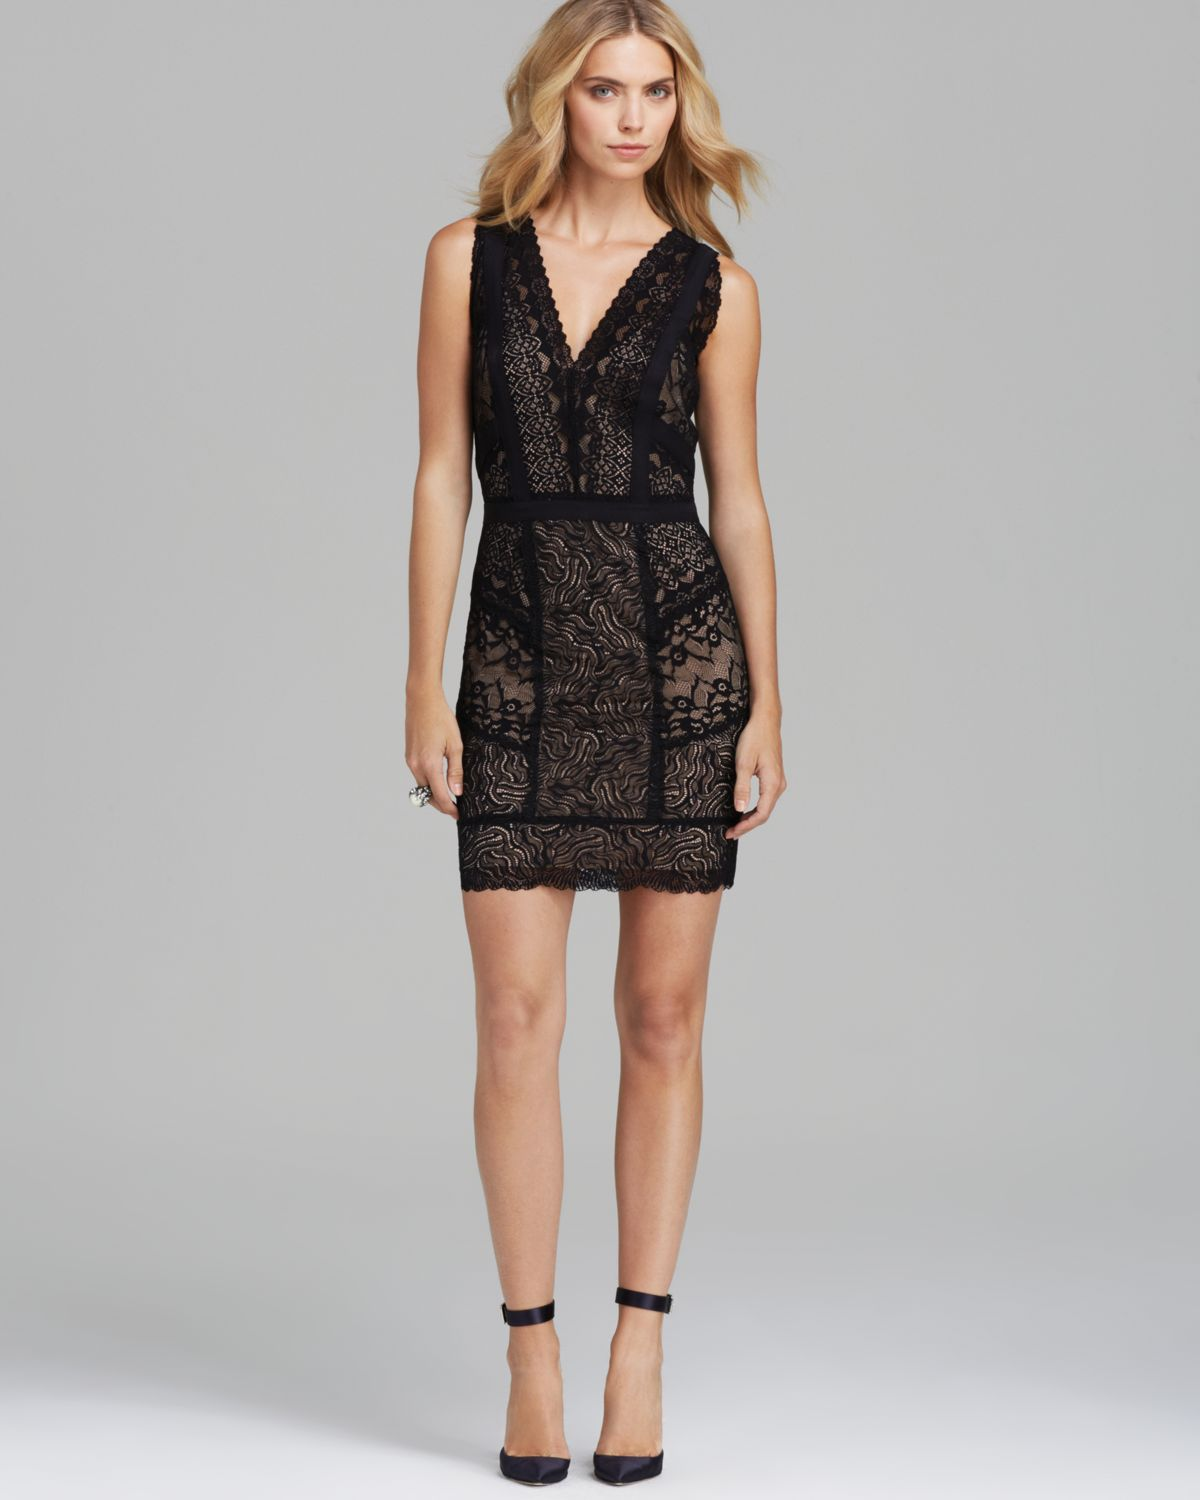 Nicole Miller Sleeveless V Neck Lace Dress Daiquiri In -2411